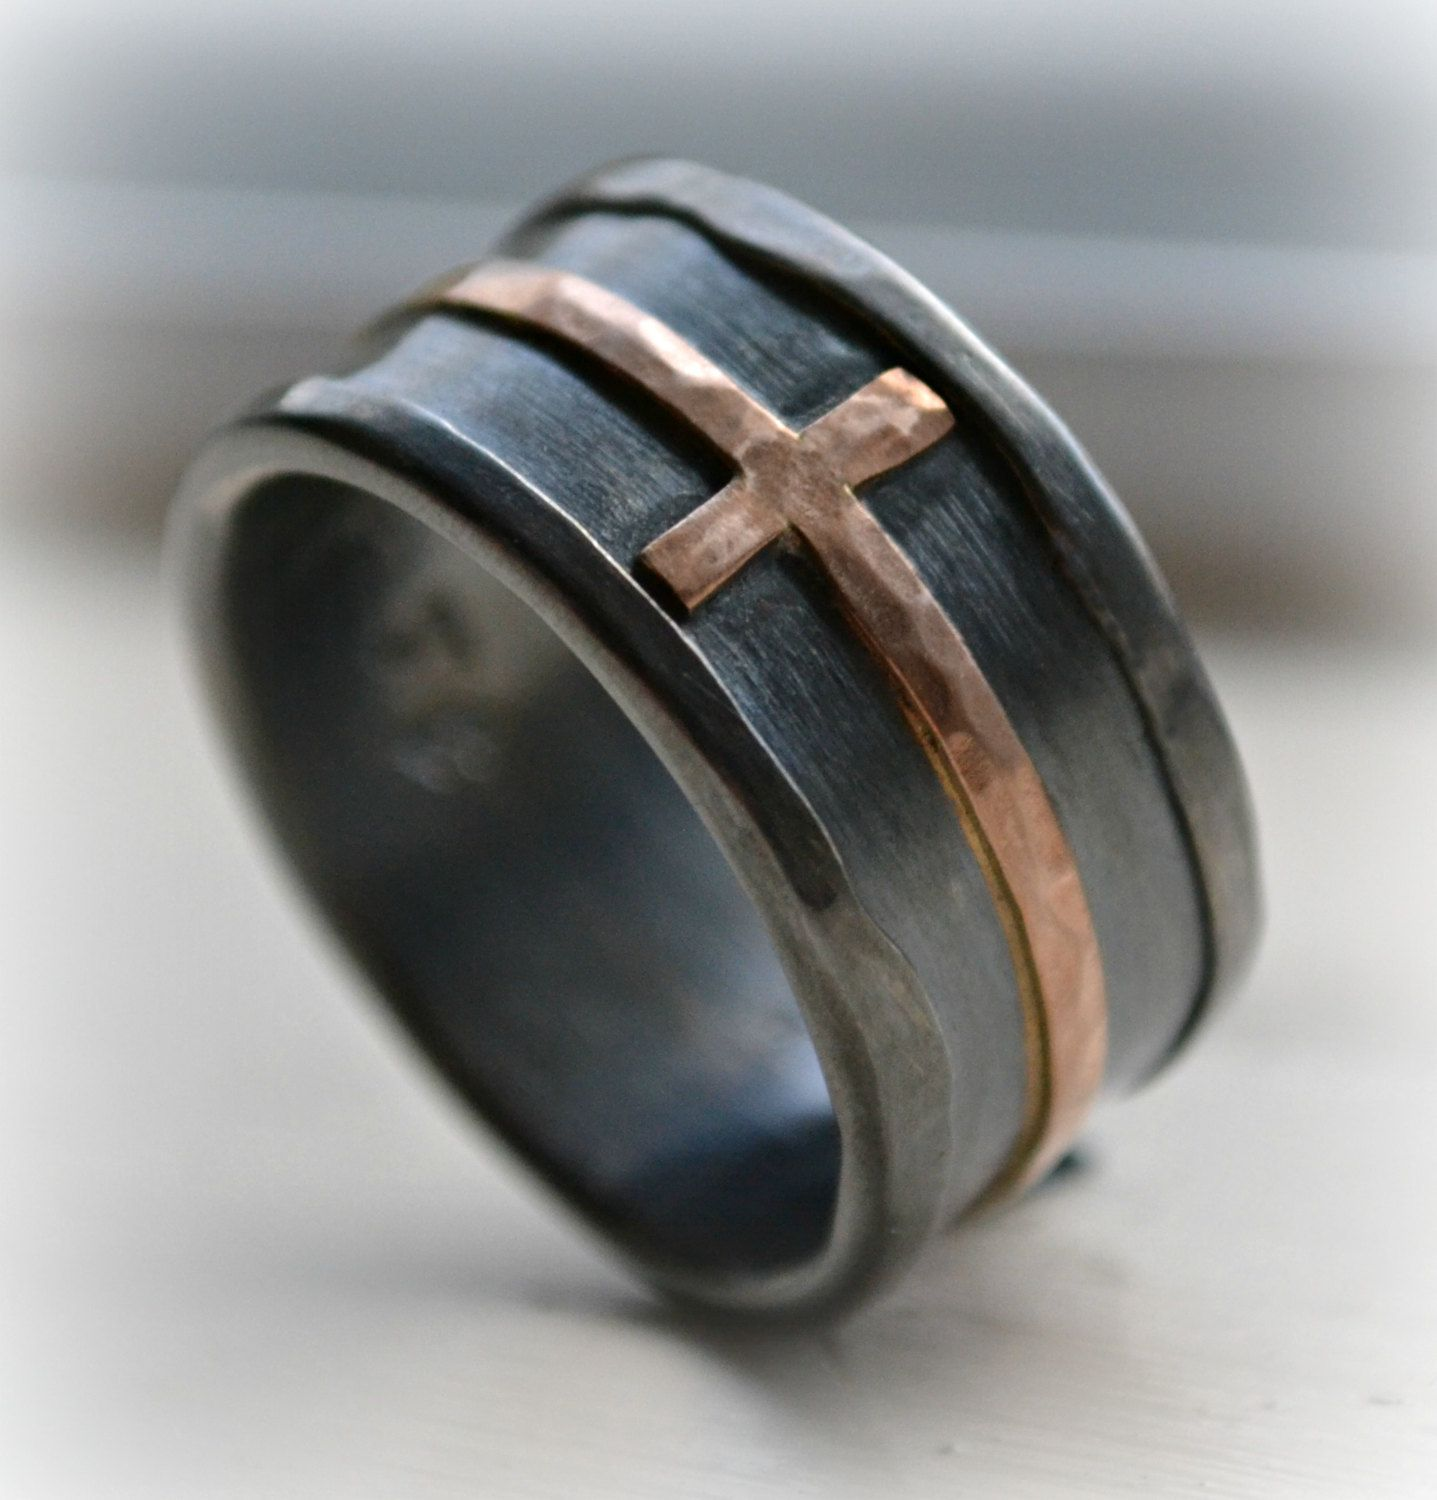 green wedding mens band sizes wood handcrafted a pin u rings burl s maple or in via elk ring tungsten ladies antler etsy